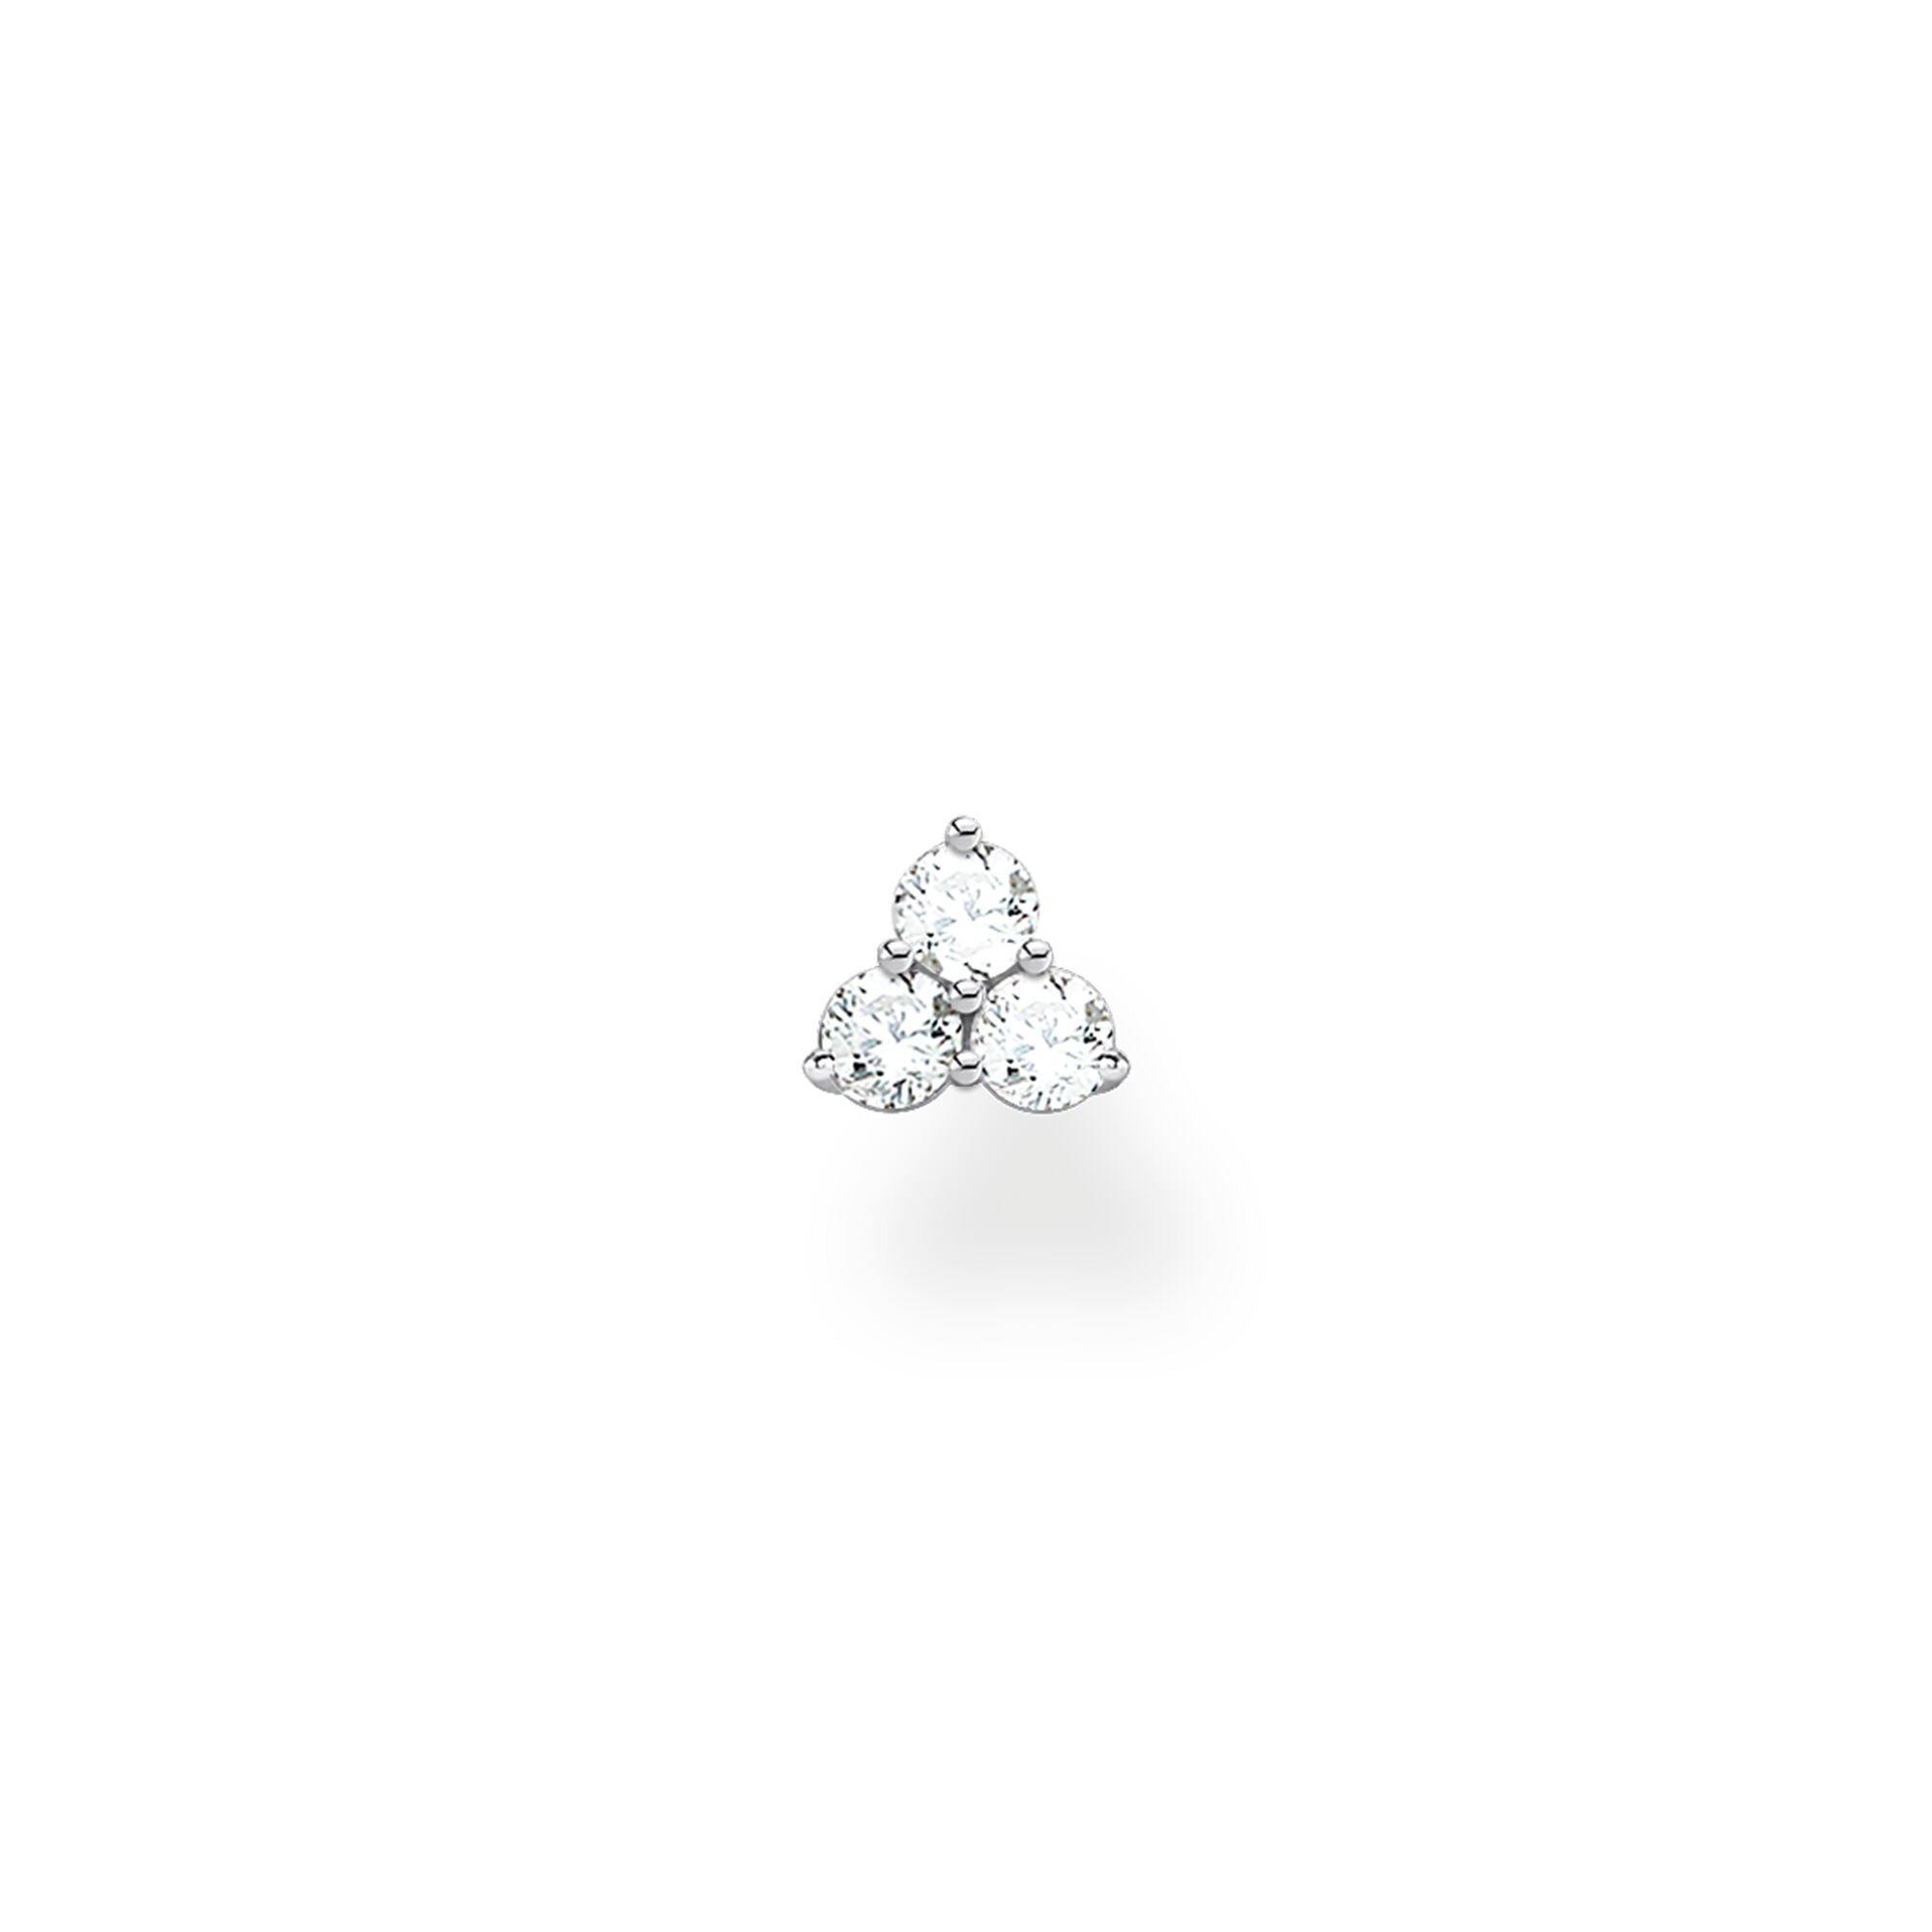 Thomas Sabo, Sterling Silver, Cubic Zirconia, Single Earring Stud, Trinity, Push backing, Ottawa